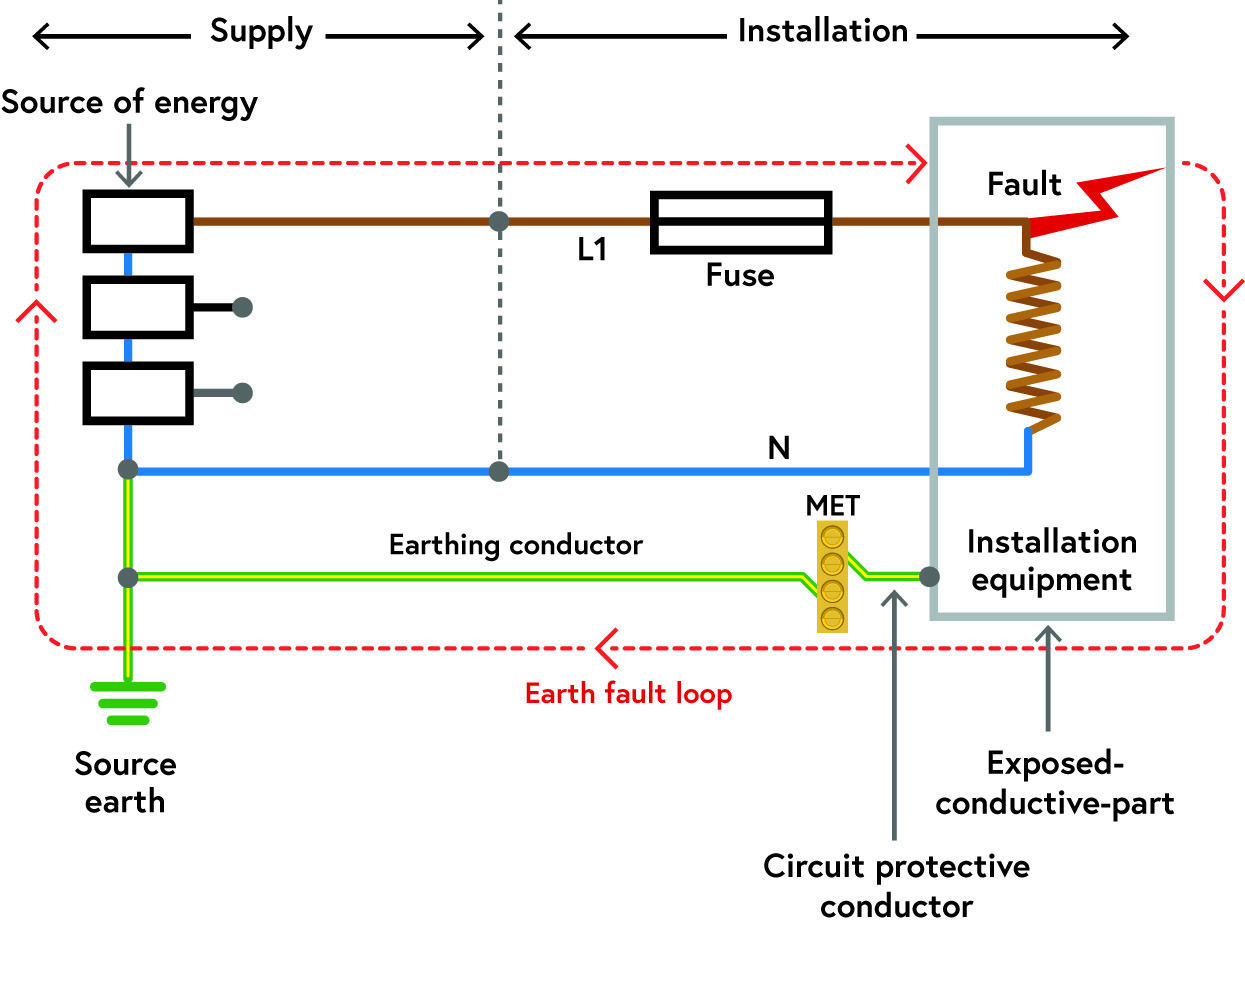 Figure 2 Simple circuit showing the fault path